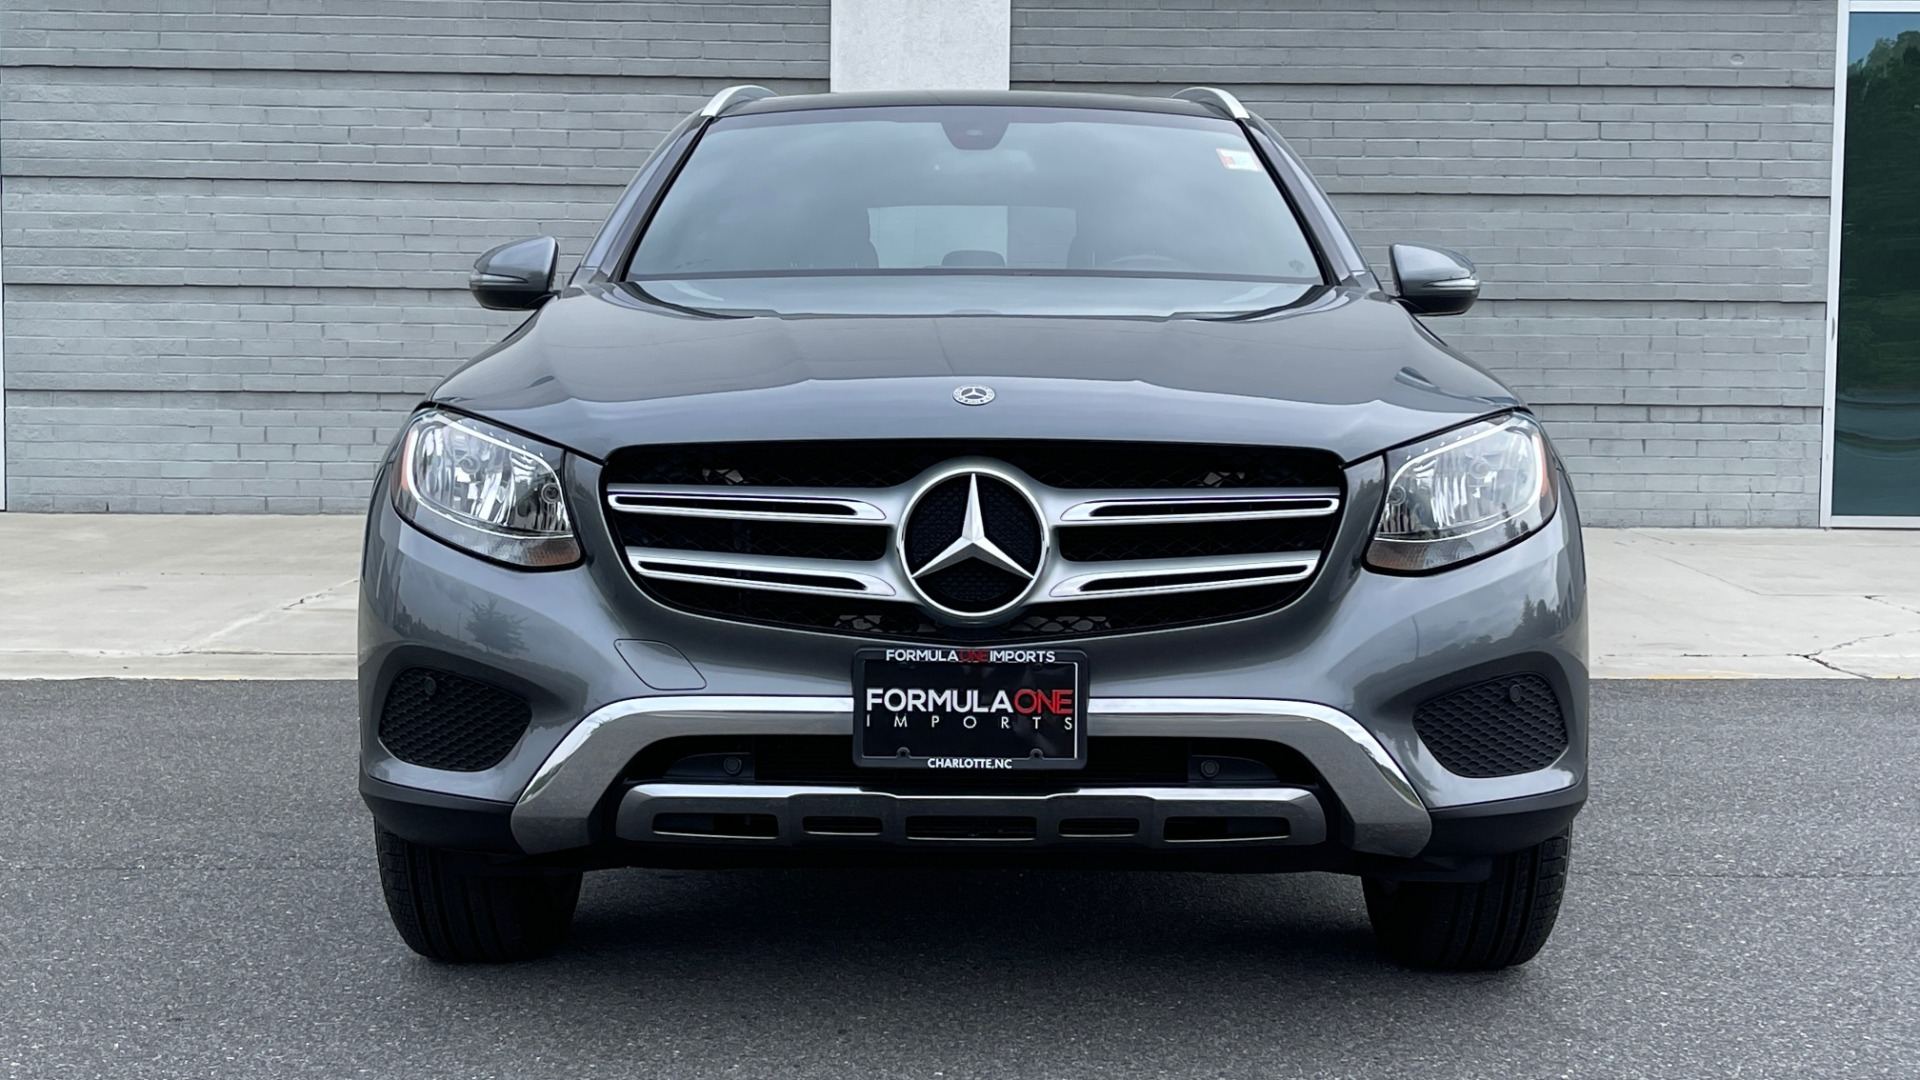 Used 2018 Mercedes-Benz GLC 300 4MATIC PREMIUM / PANO-ROOF / HTD STS / APPLE / REARVIEW for sale $34,295 at Formula Imports in Charlotte NC 28227 13